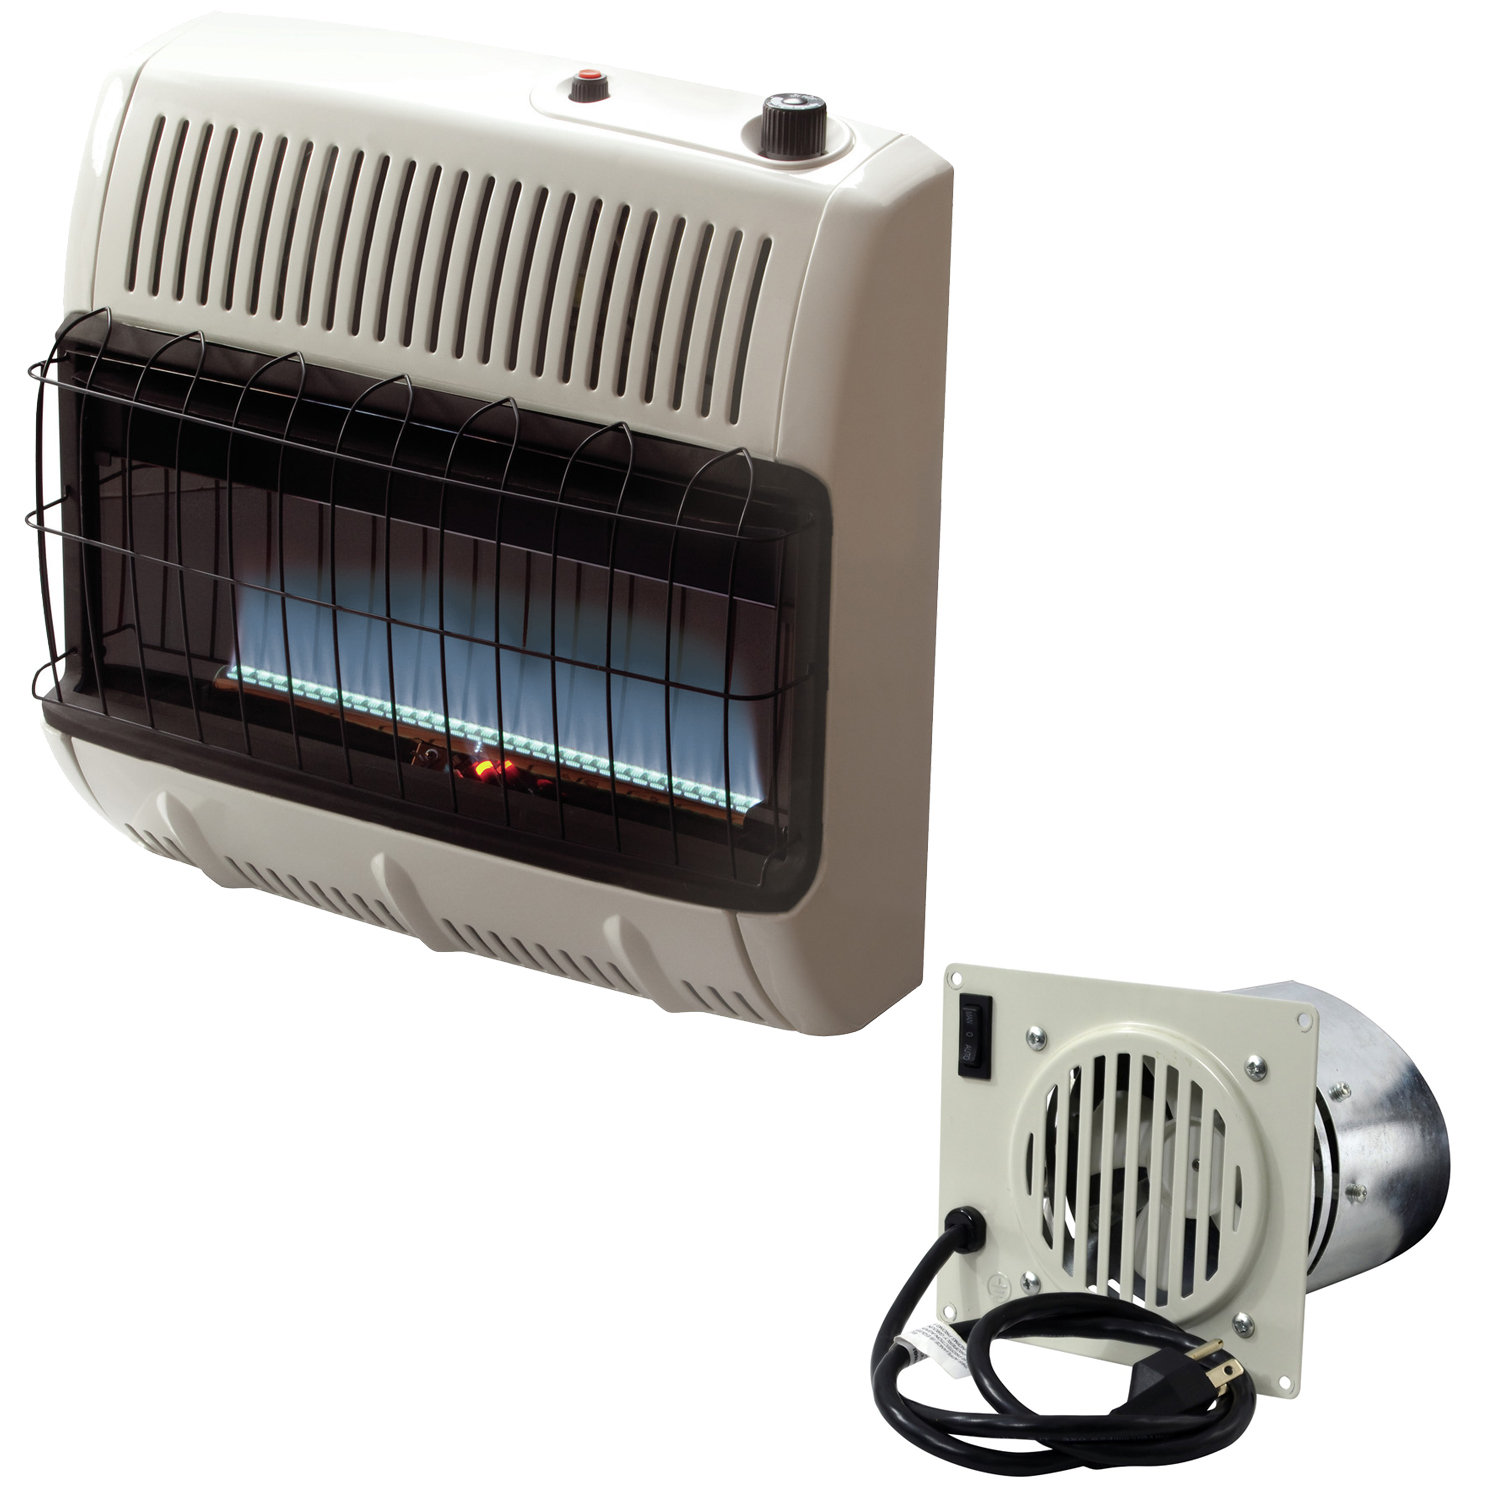 Mr. Heater Vent Free Blue Flame 30,000 BTU Natural Gas Heater w/ Blower Fan Kit